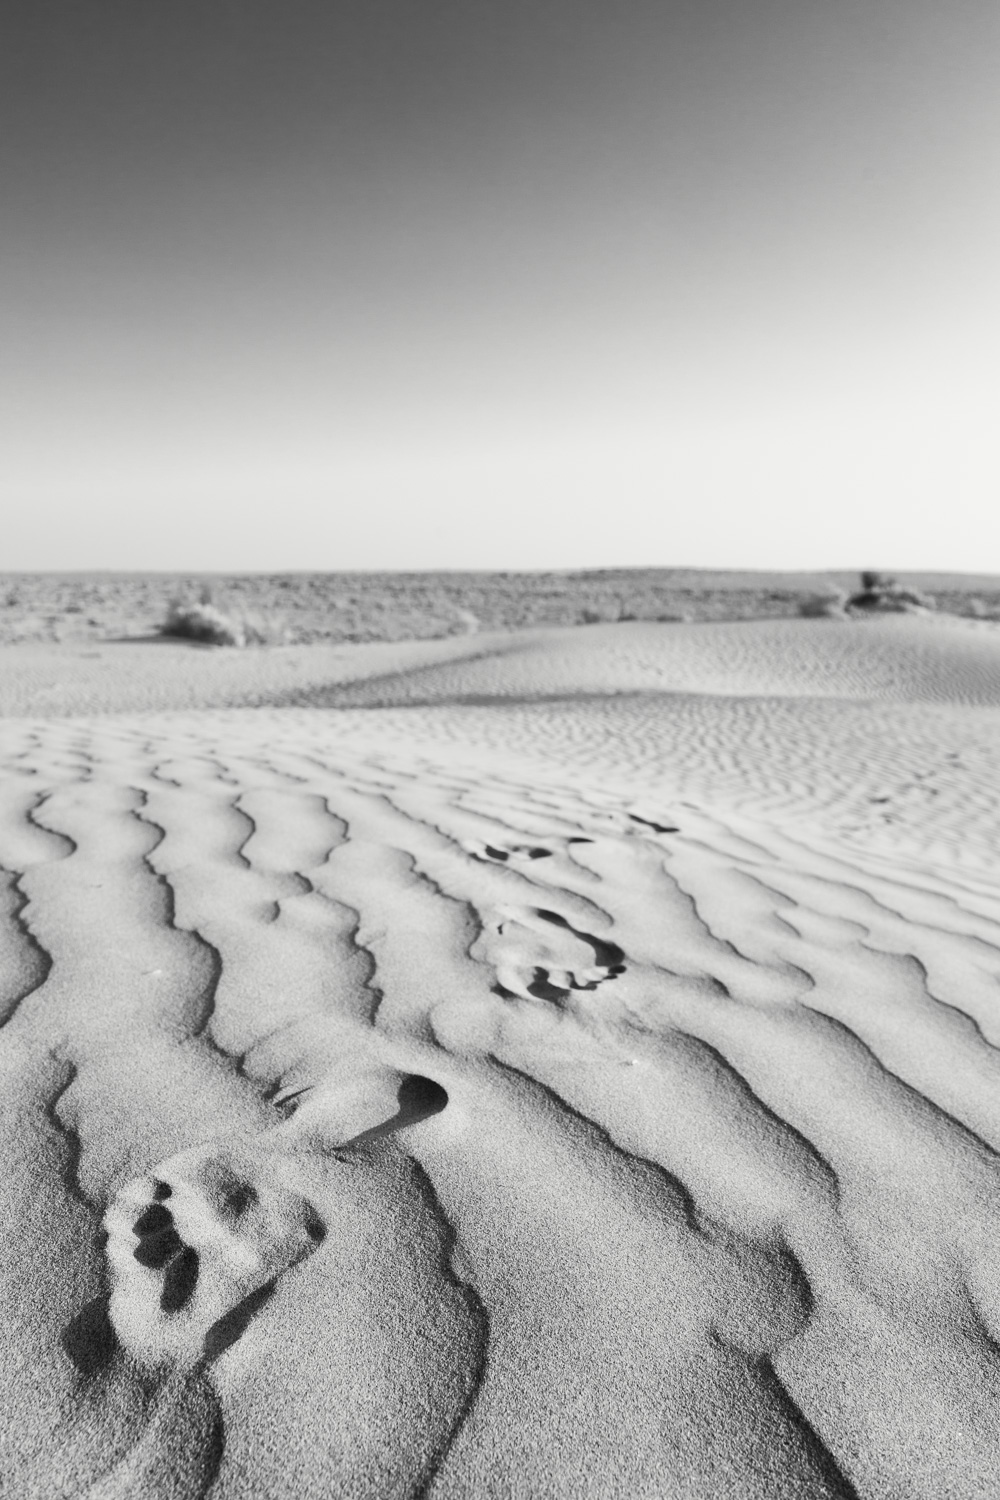 I took this picture in the Thar Desert in Rajasthan (India). In this collection it's the one picture where traveling is the main topic. It's about earth and the mark we leave with every step on our journey.